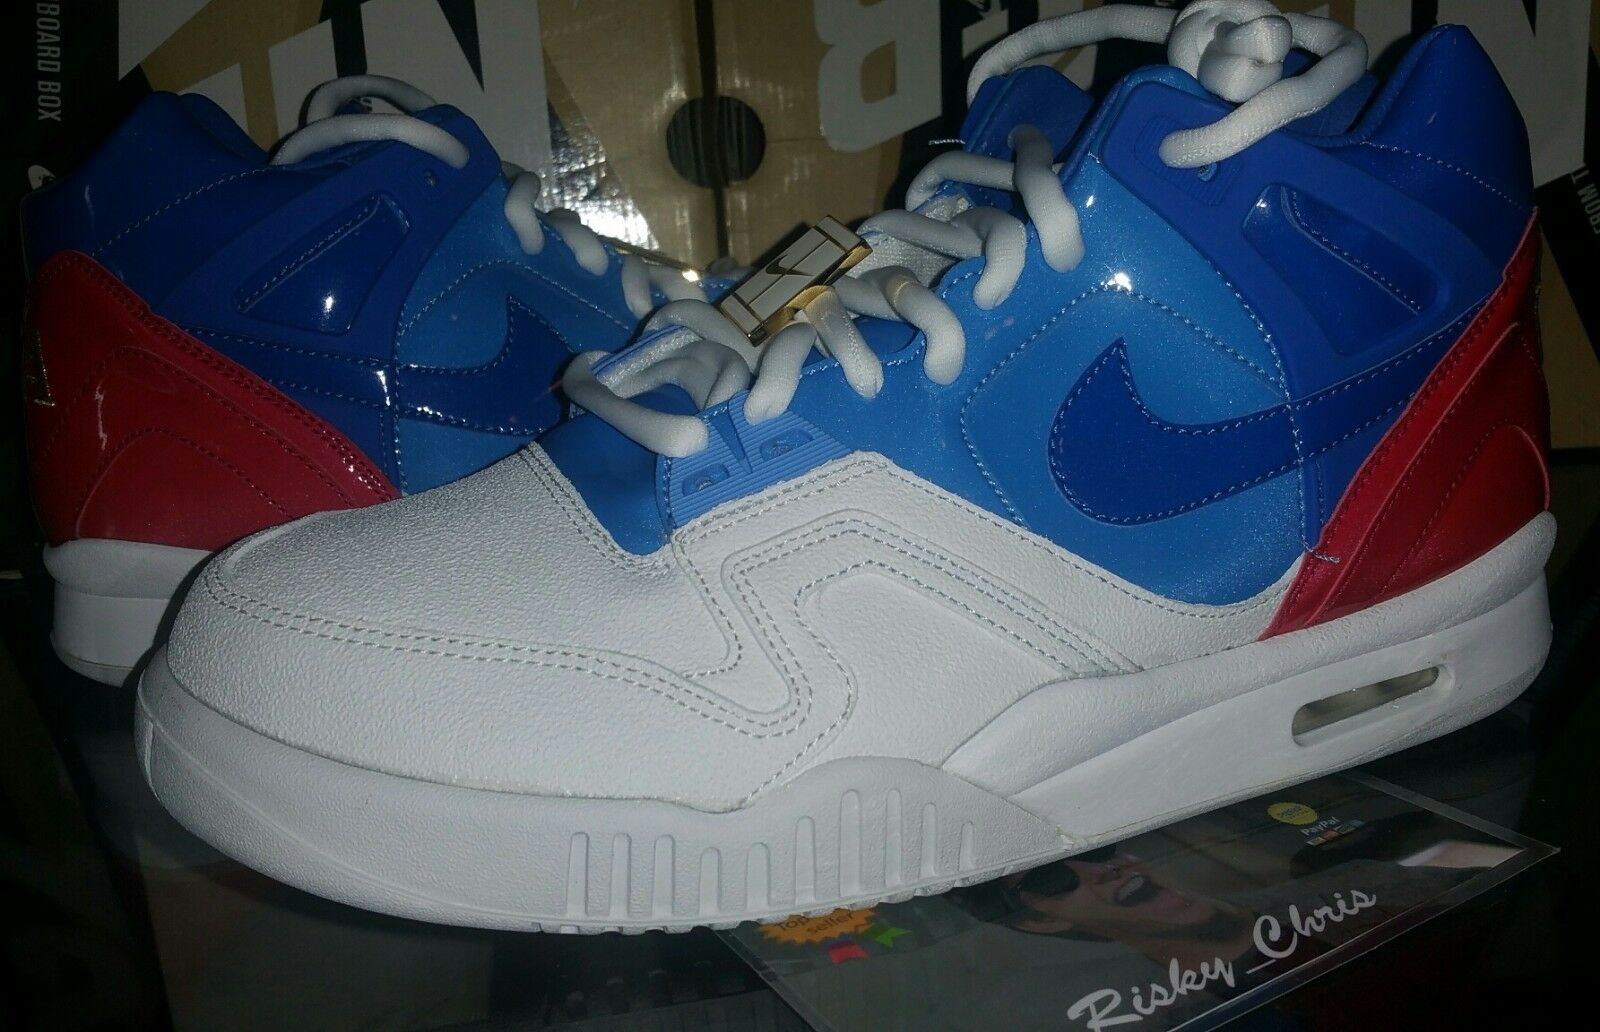 NIKE AIR TECH CHALLENGE II SP US OPEN SZ 10.5 621358-146 Andre Agassi USA NEW DS